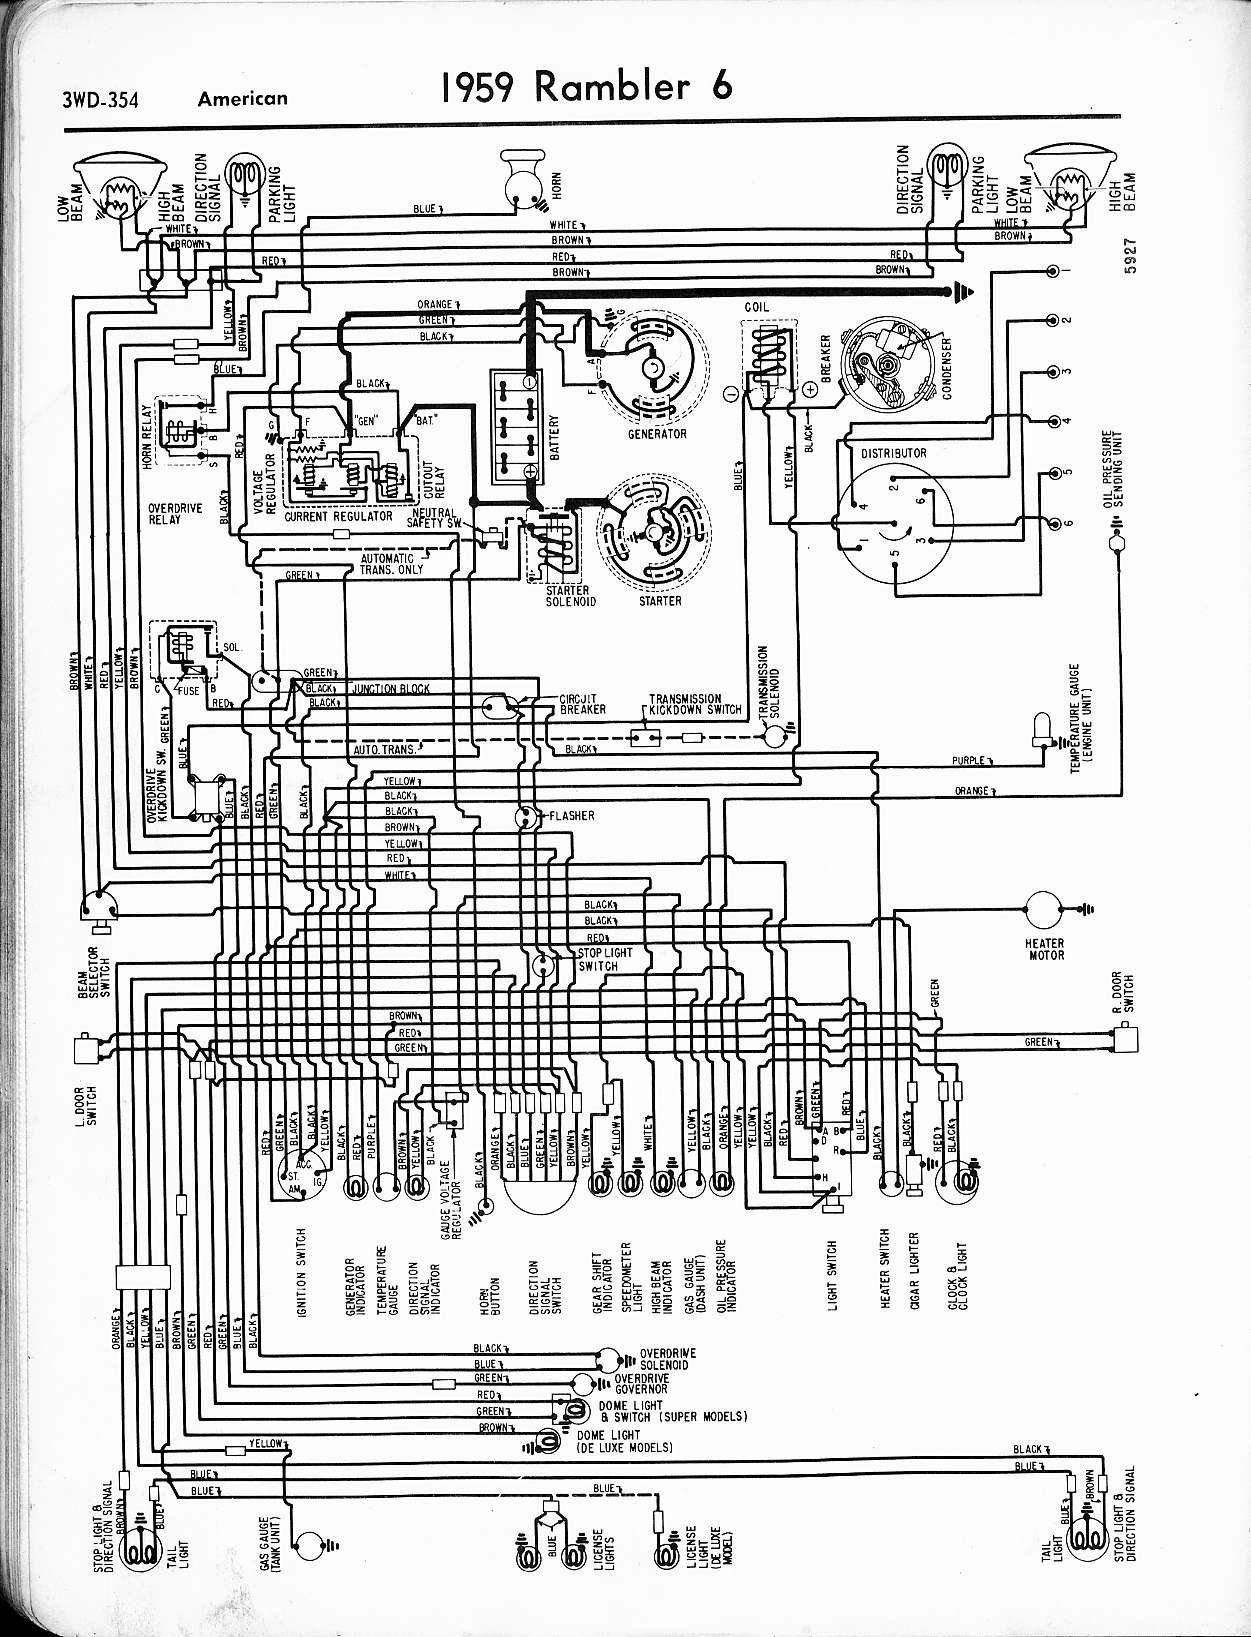 Fabulous Clic Car Wiring Harness Wiring Diagram Wiring Cloud Toolfoxcilixyz